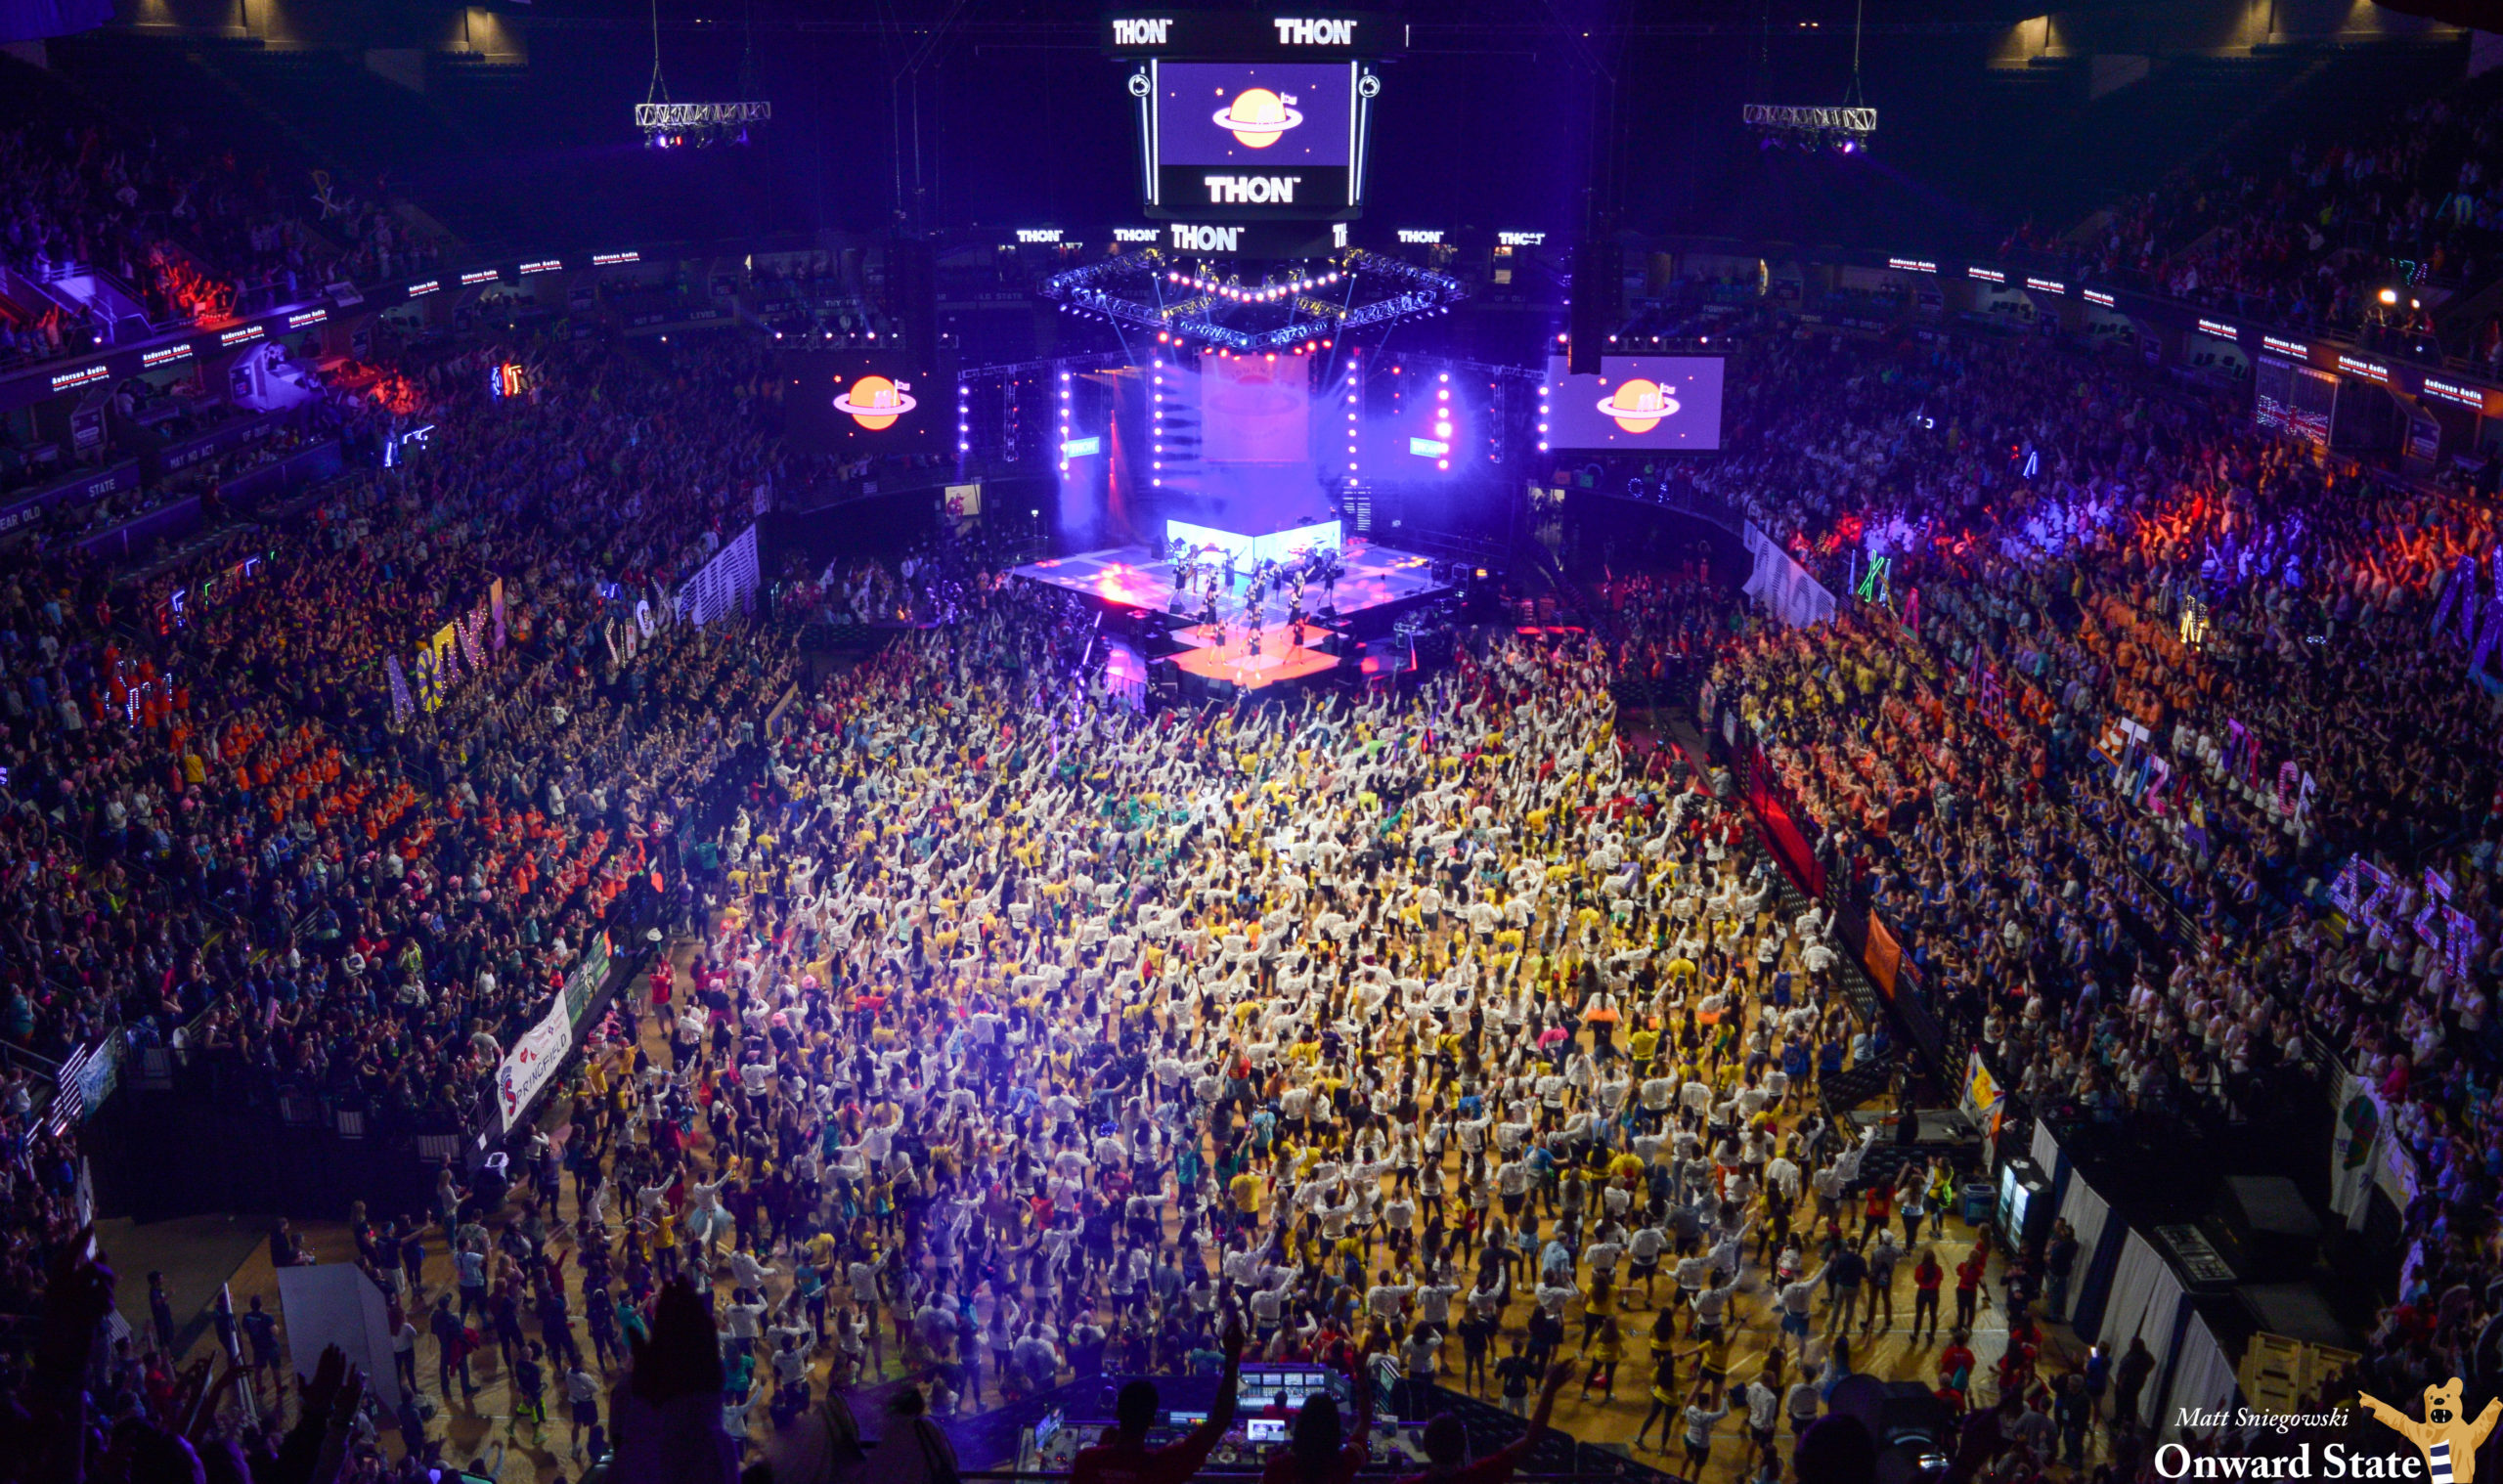 Penn State Academic Calendar Spring 2022.Thon 2022 Spring Captain Applications Now Open Onward State